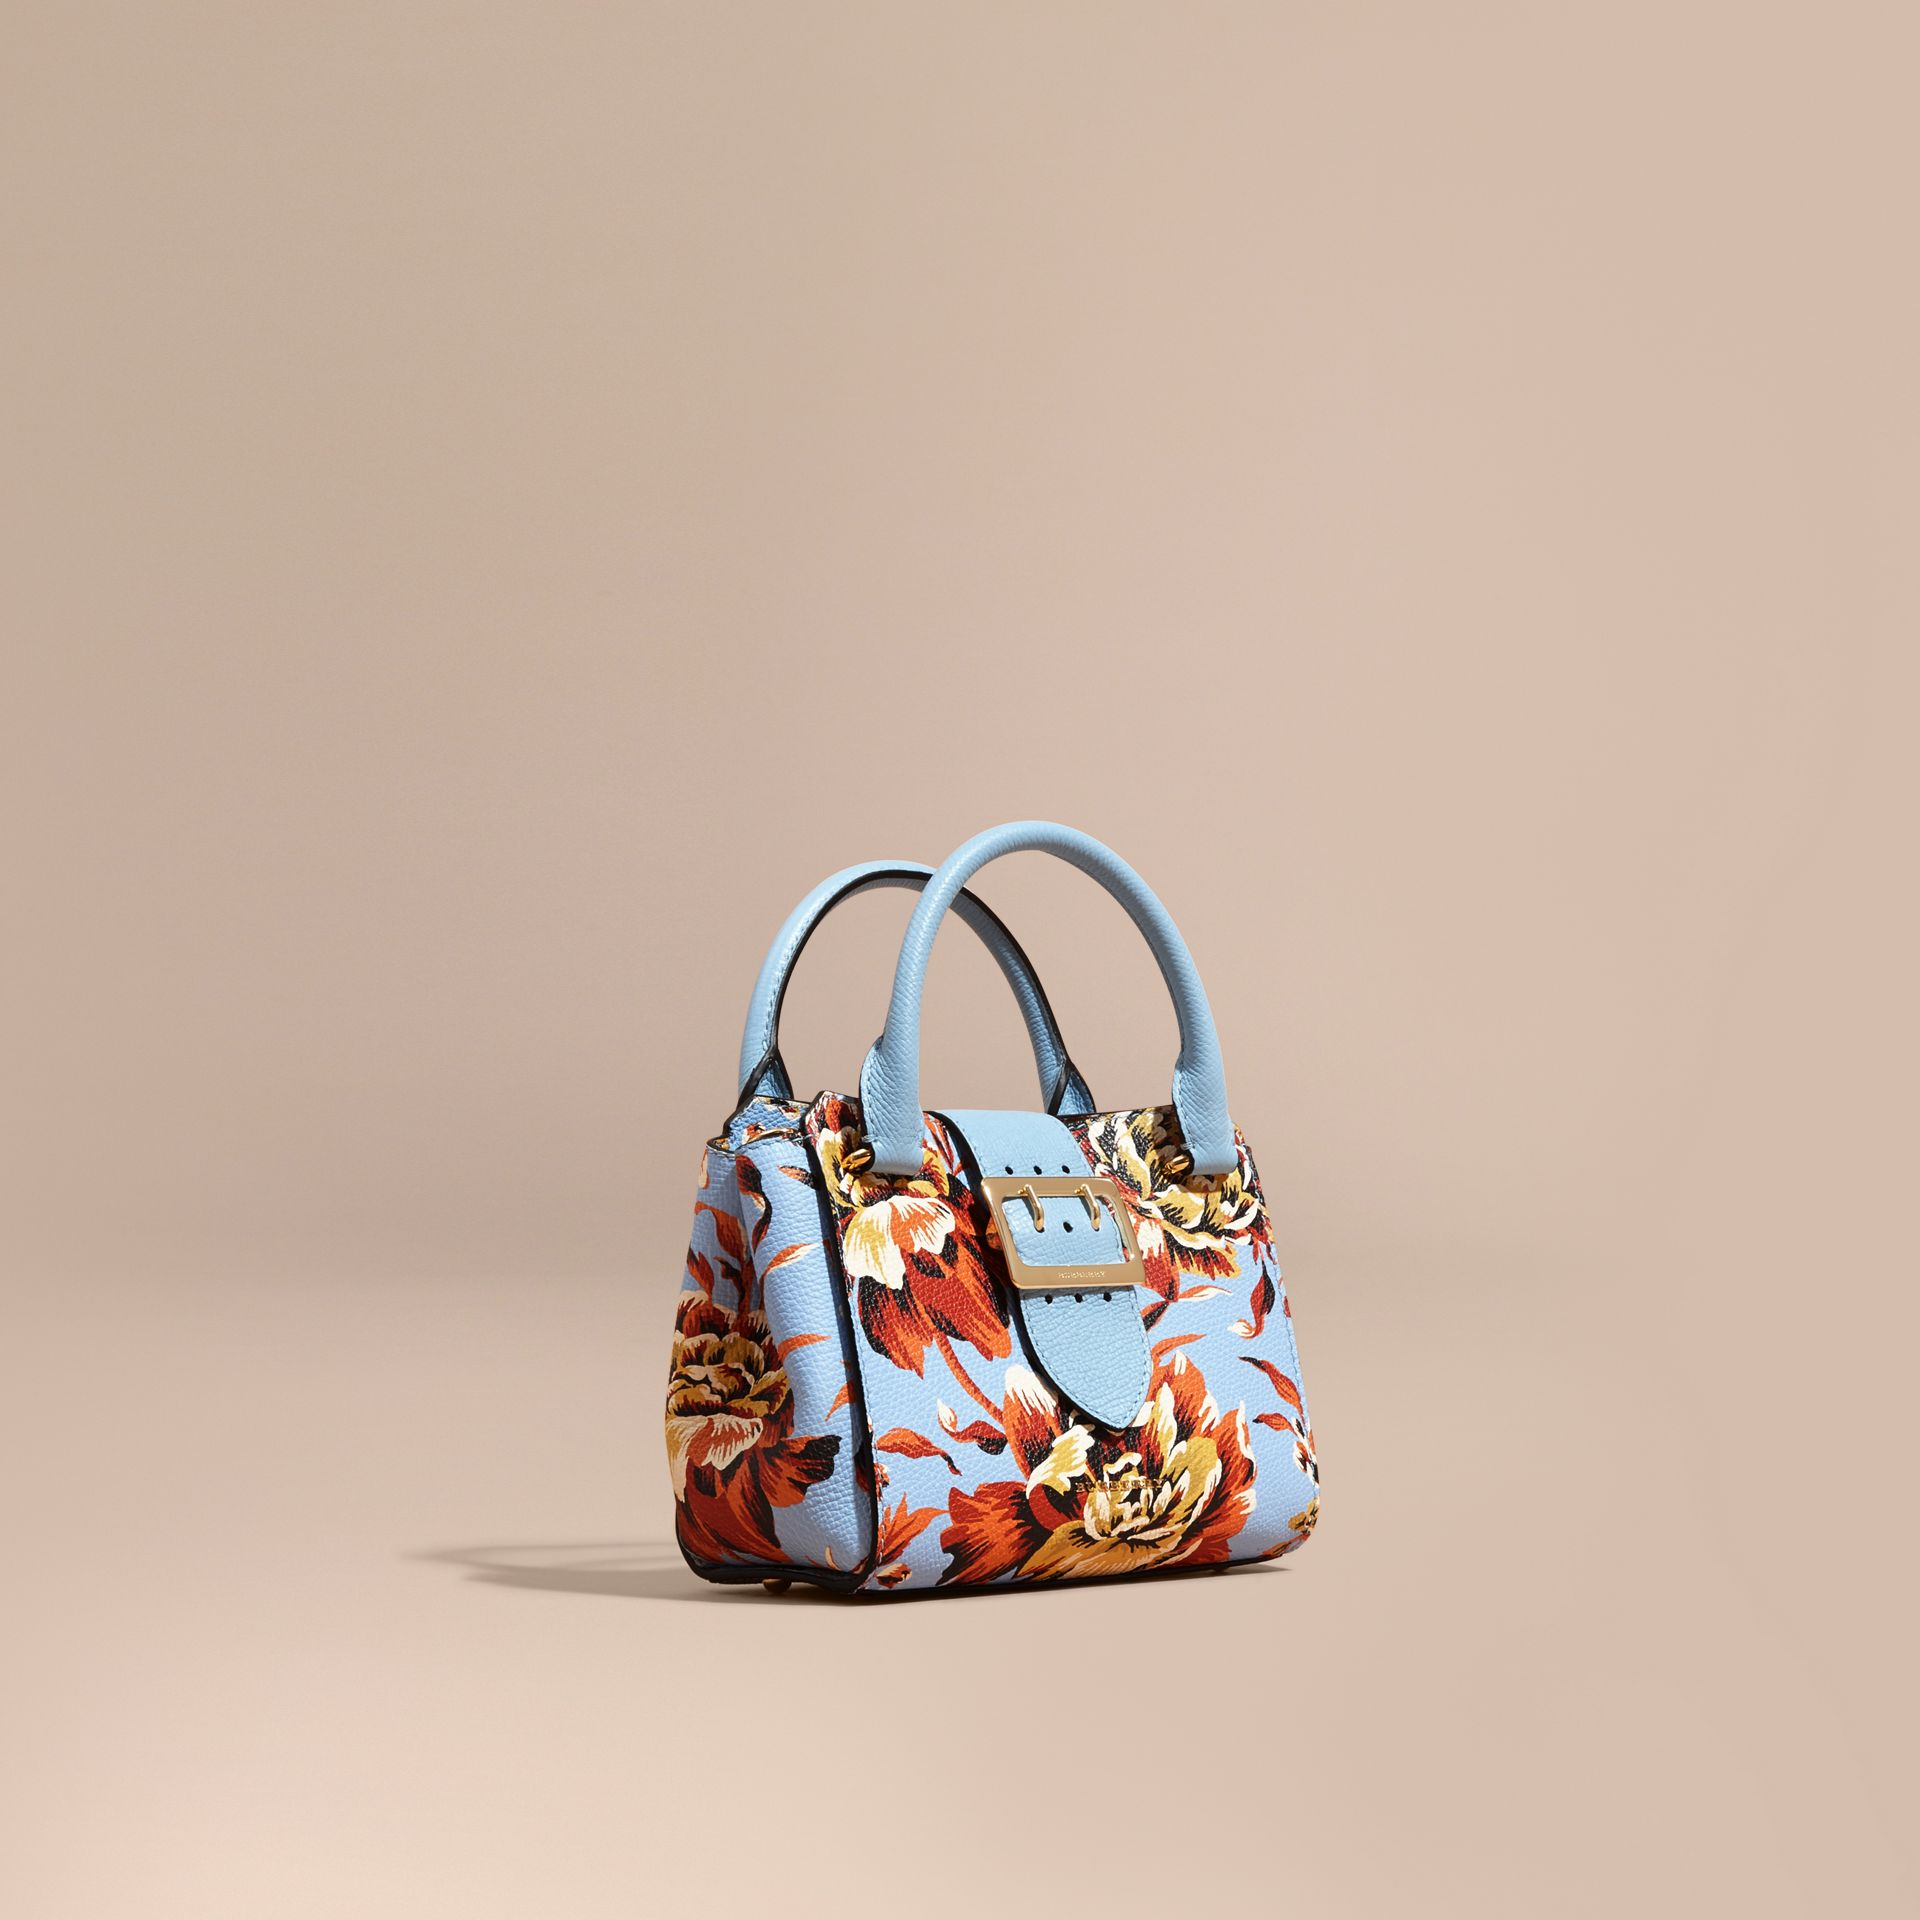 Bleu pâle/orange vif Petit sac tote The Buckle en cuir avec imprimé à pivoines roses Bleu Pâle/orange Vif - photo de la galerie 1